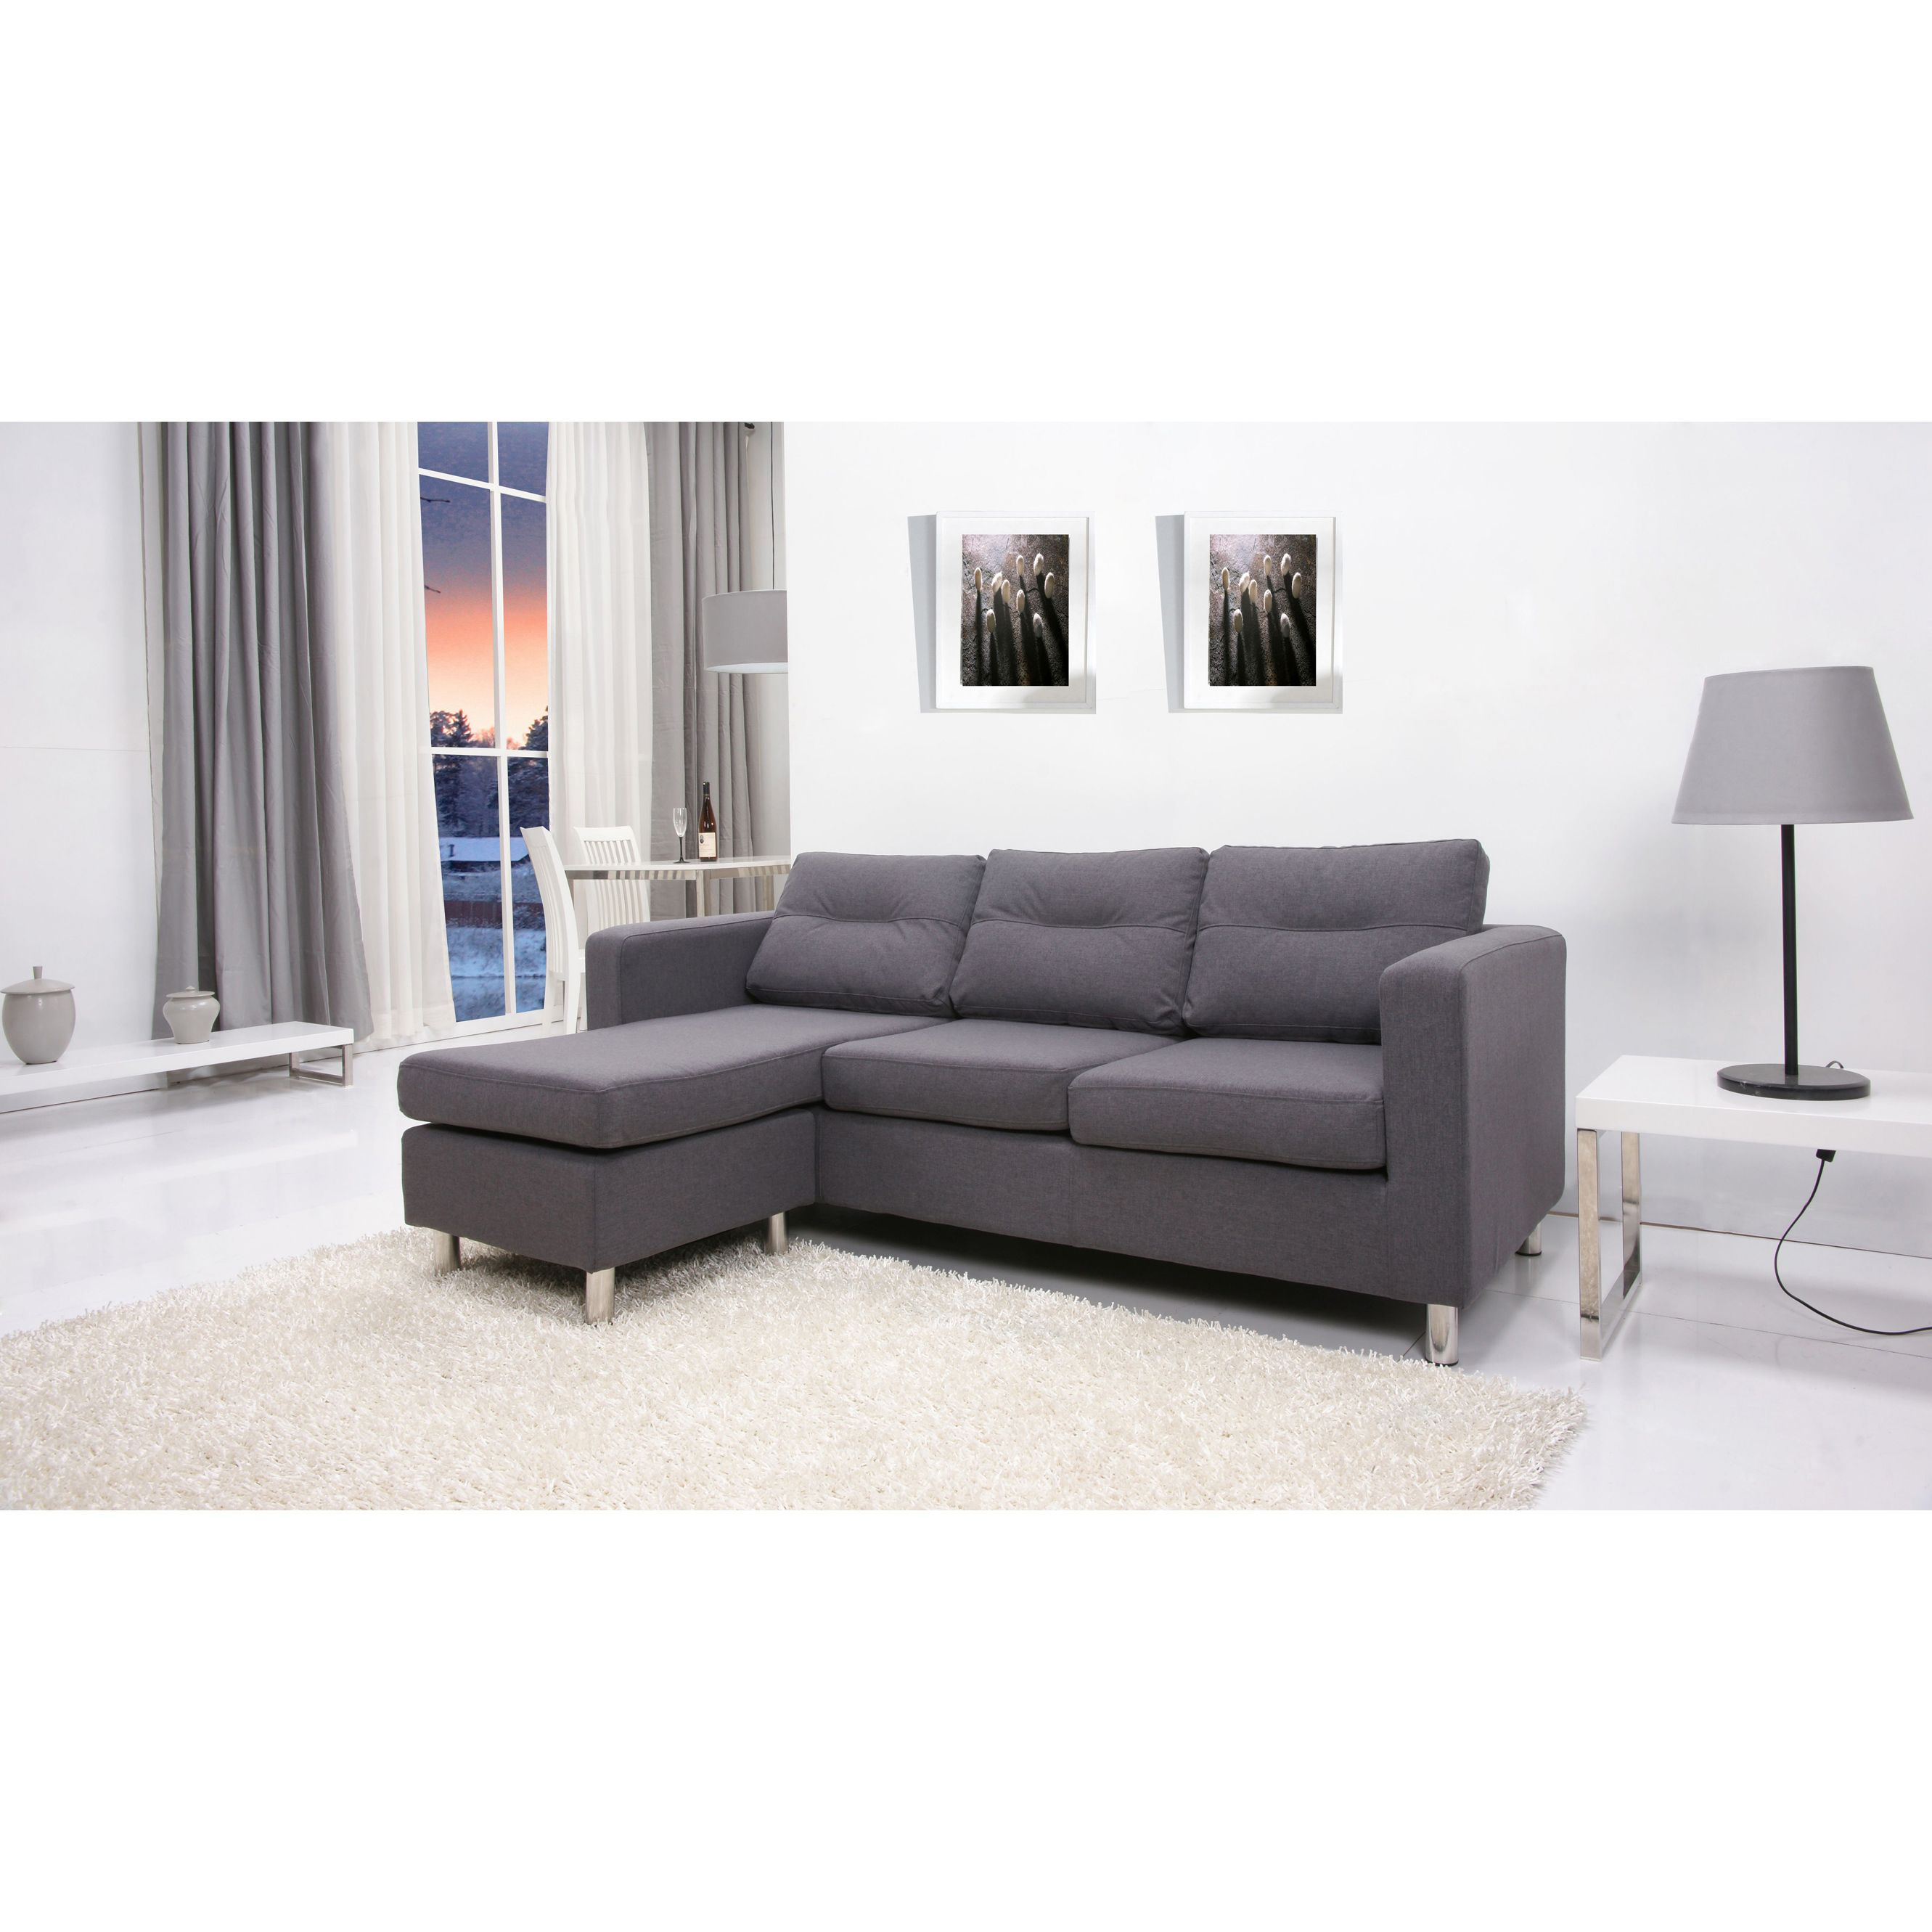 Detroit Dark Grey Convertible Sectional Sofa and Ottoman